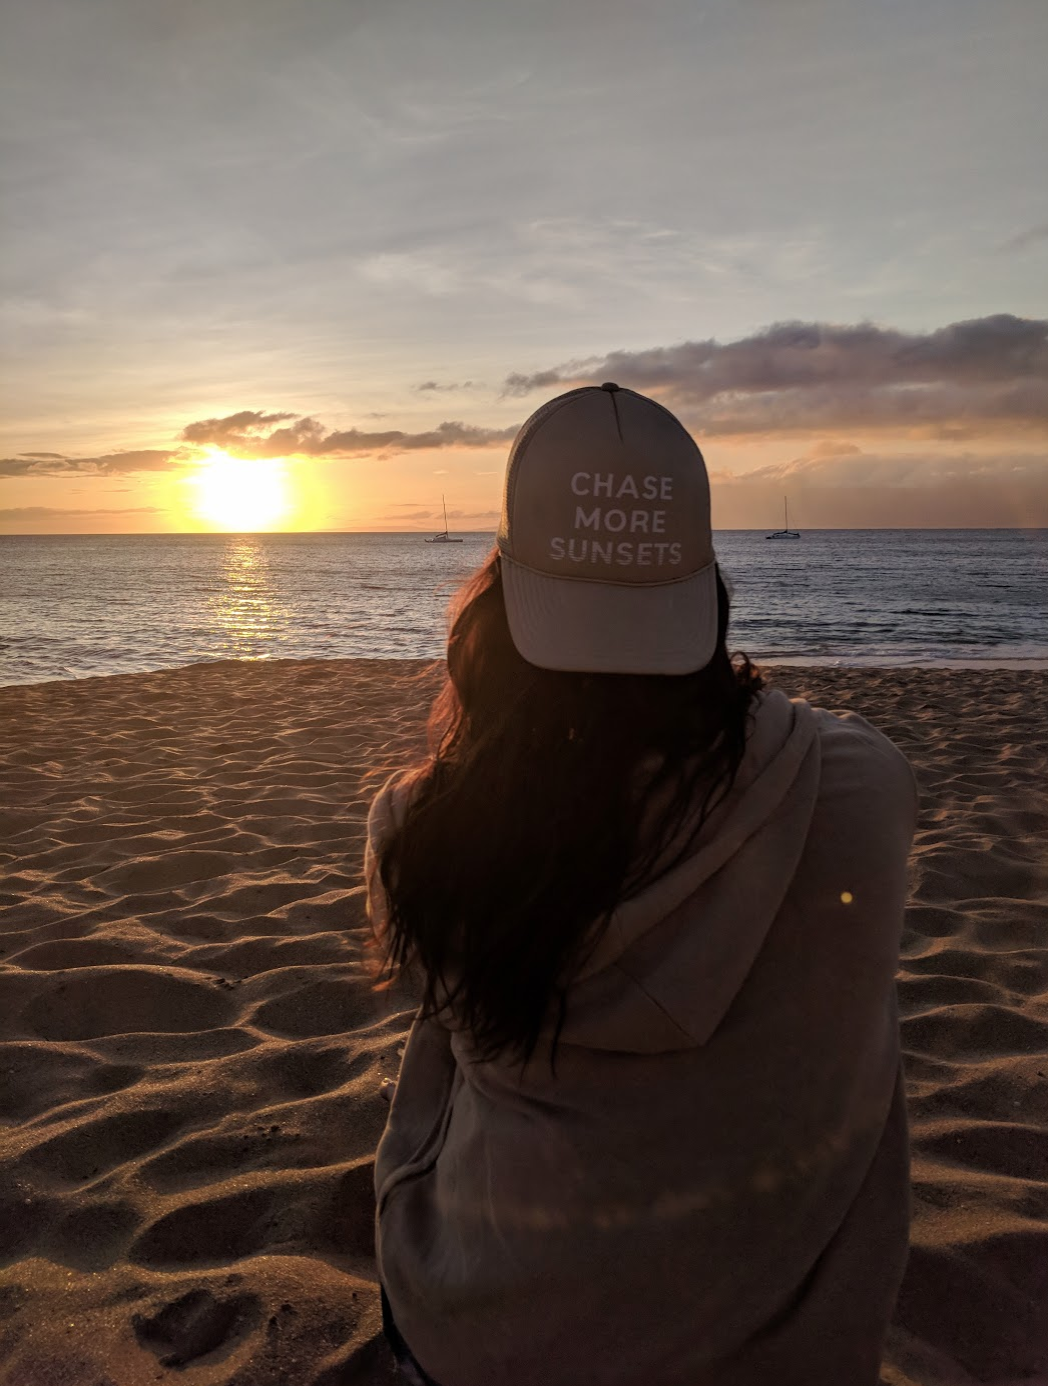 chase more sunsets trucker hat on the beach watching the sunset